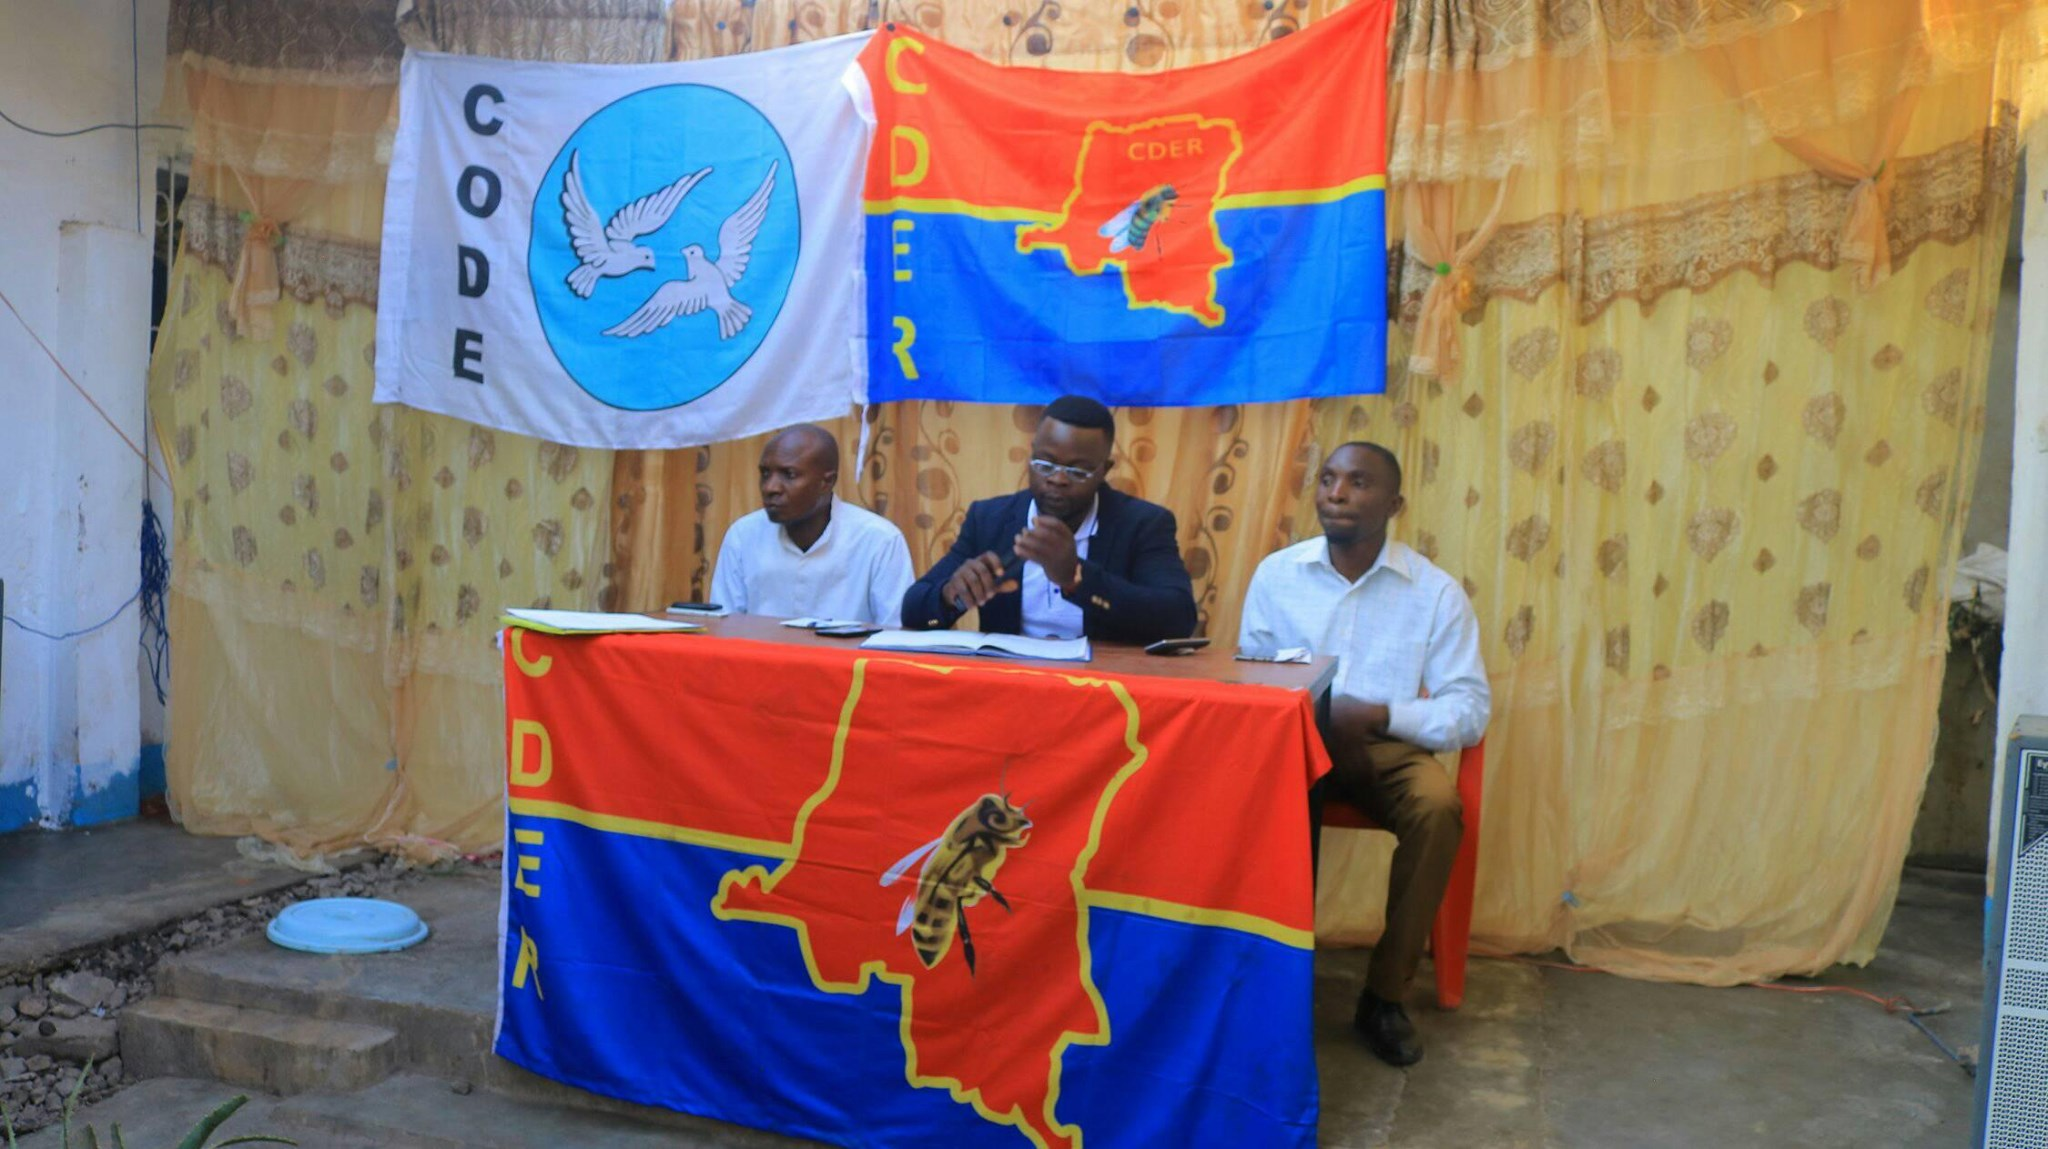 DRC renovating democrats (CDER) political bureau